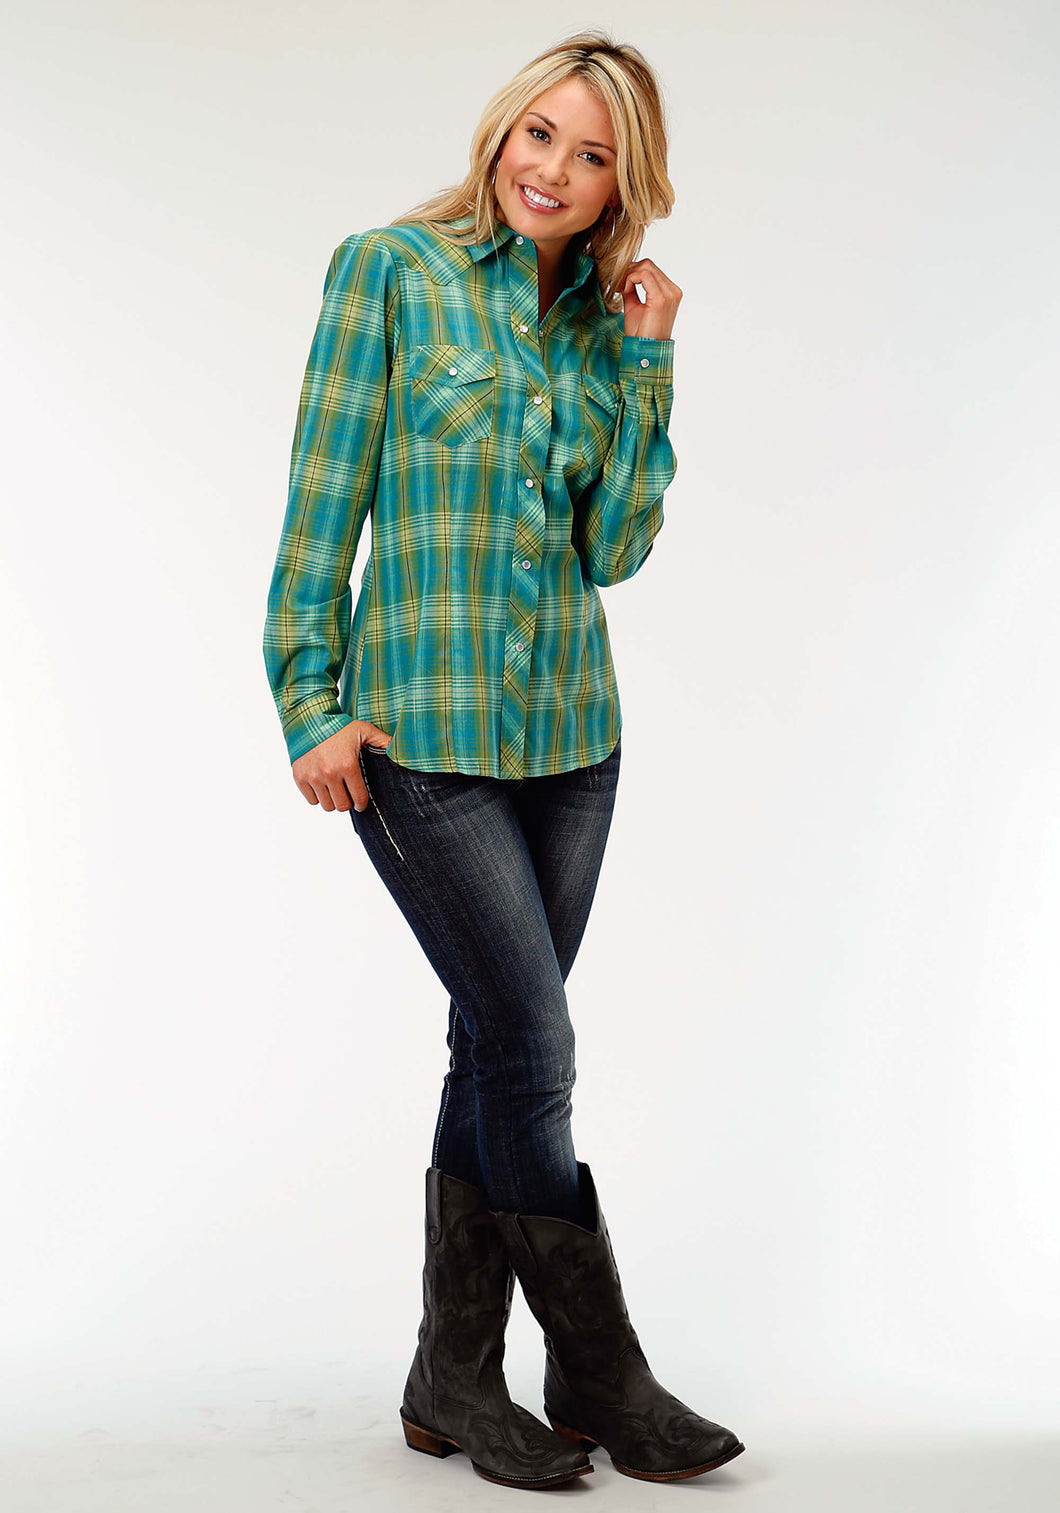 Karman Classics- 5545 Plaid Polyc Womens Long Sleeve Shirt 1200 Teal Lime Plaid